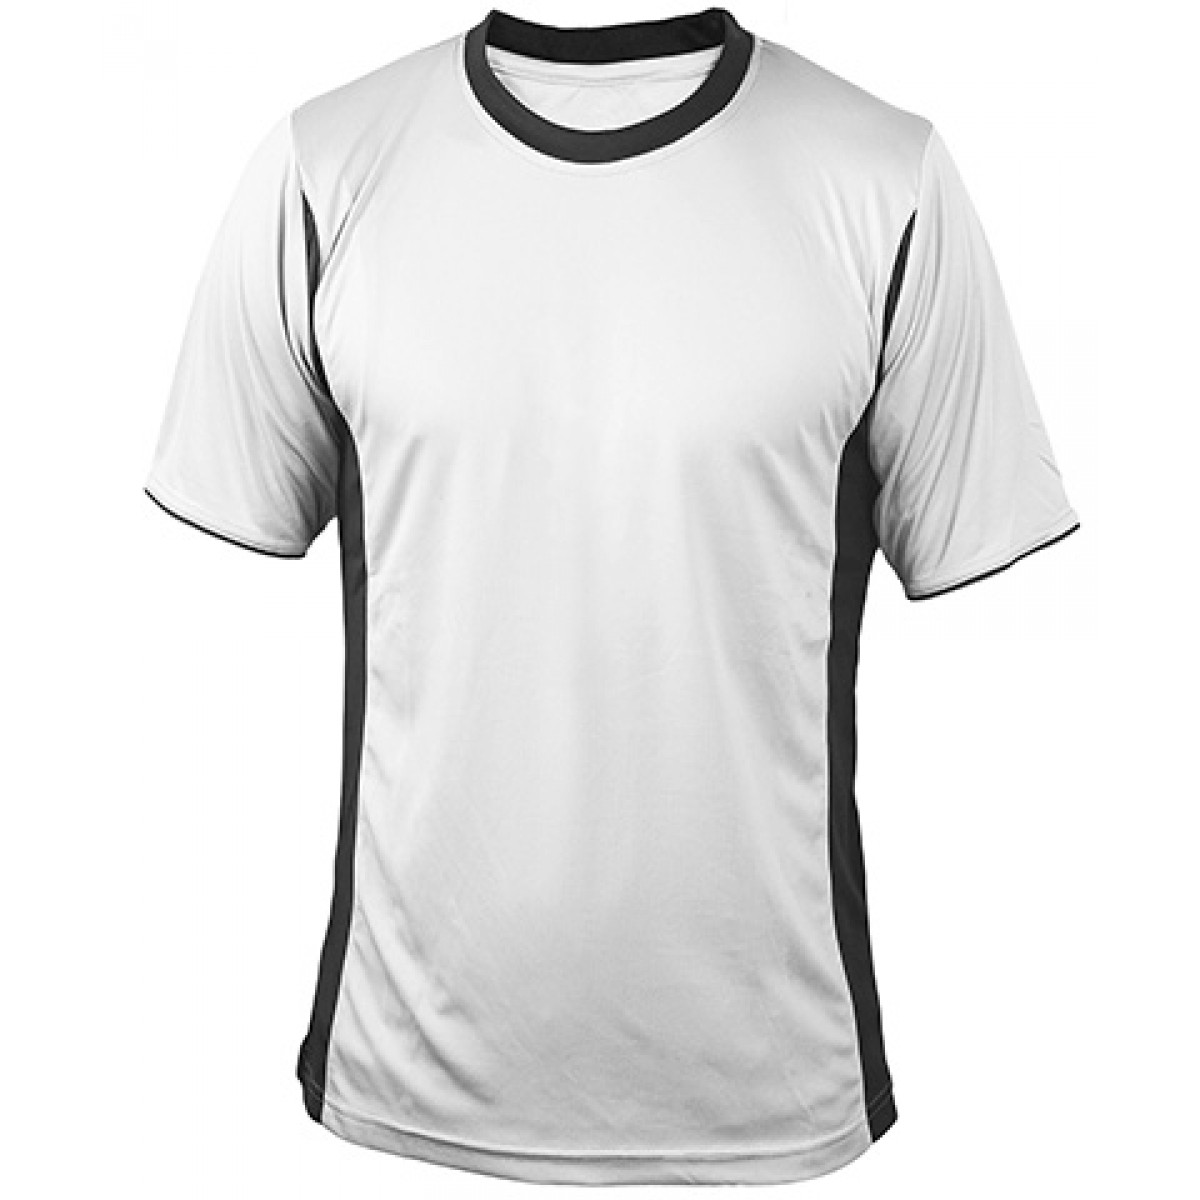 White Short Sleeves Performance With Black Side Insert-Black-S